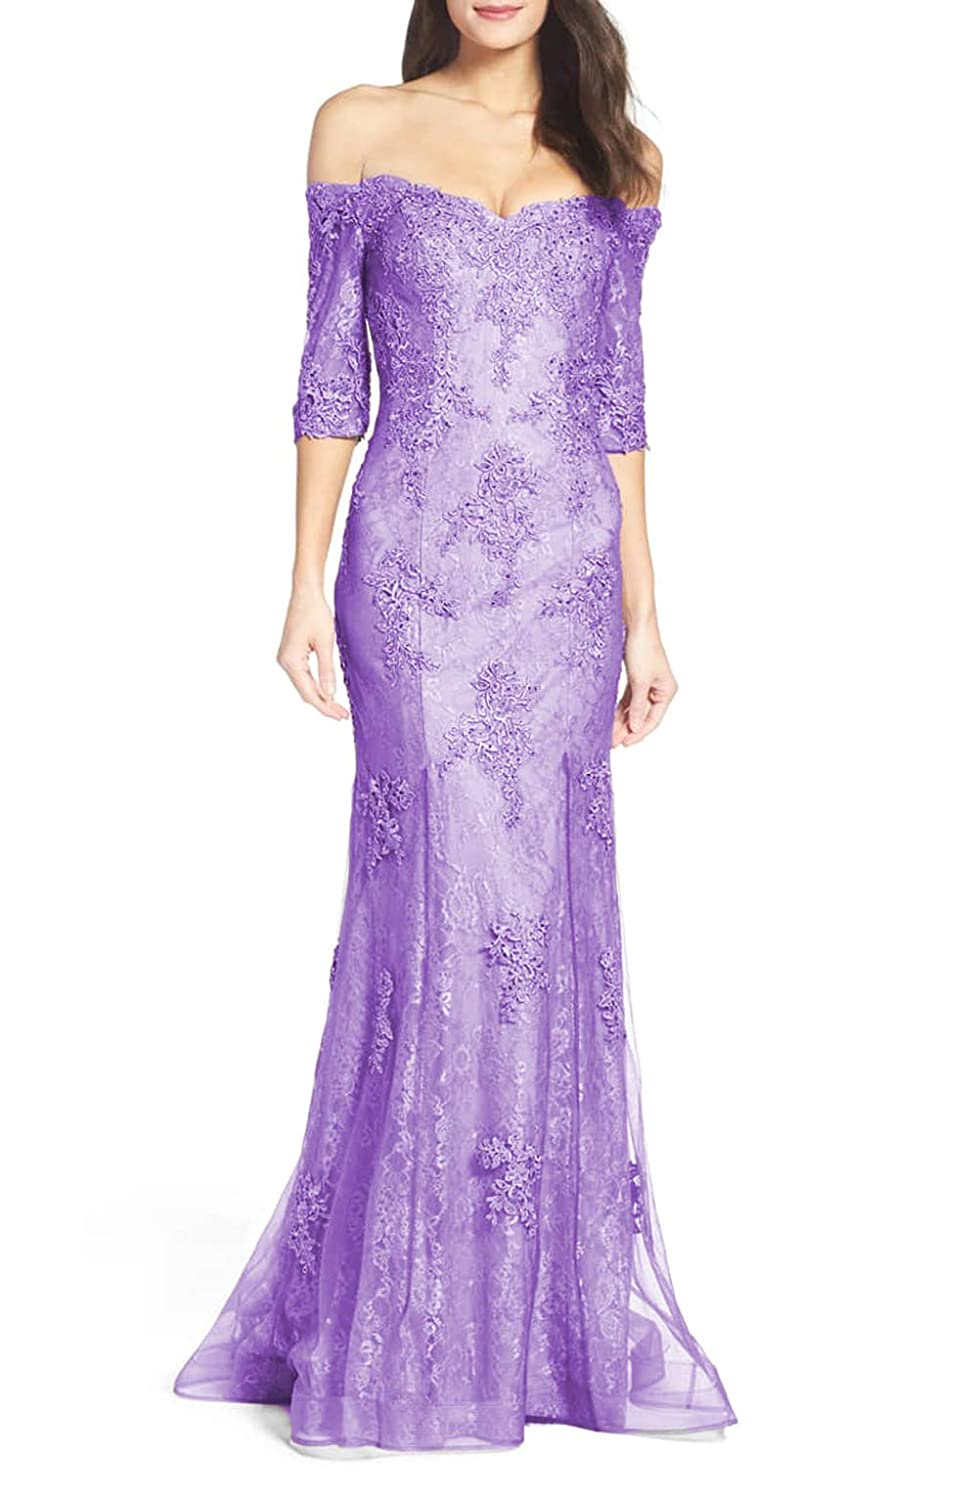 Purple Aisahnglina Women's Lace Appliqued Sweetheart Off The Shoulder Evening Ball Gown for Wedding Party Cocktail